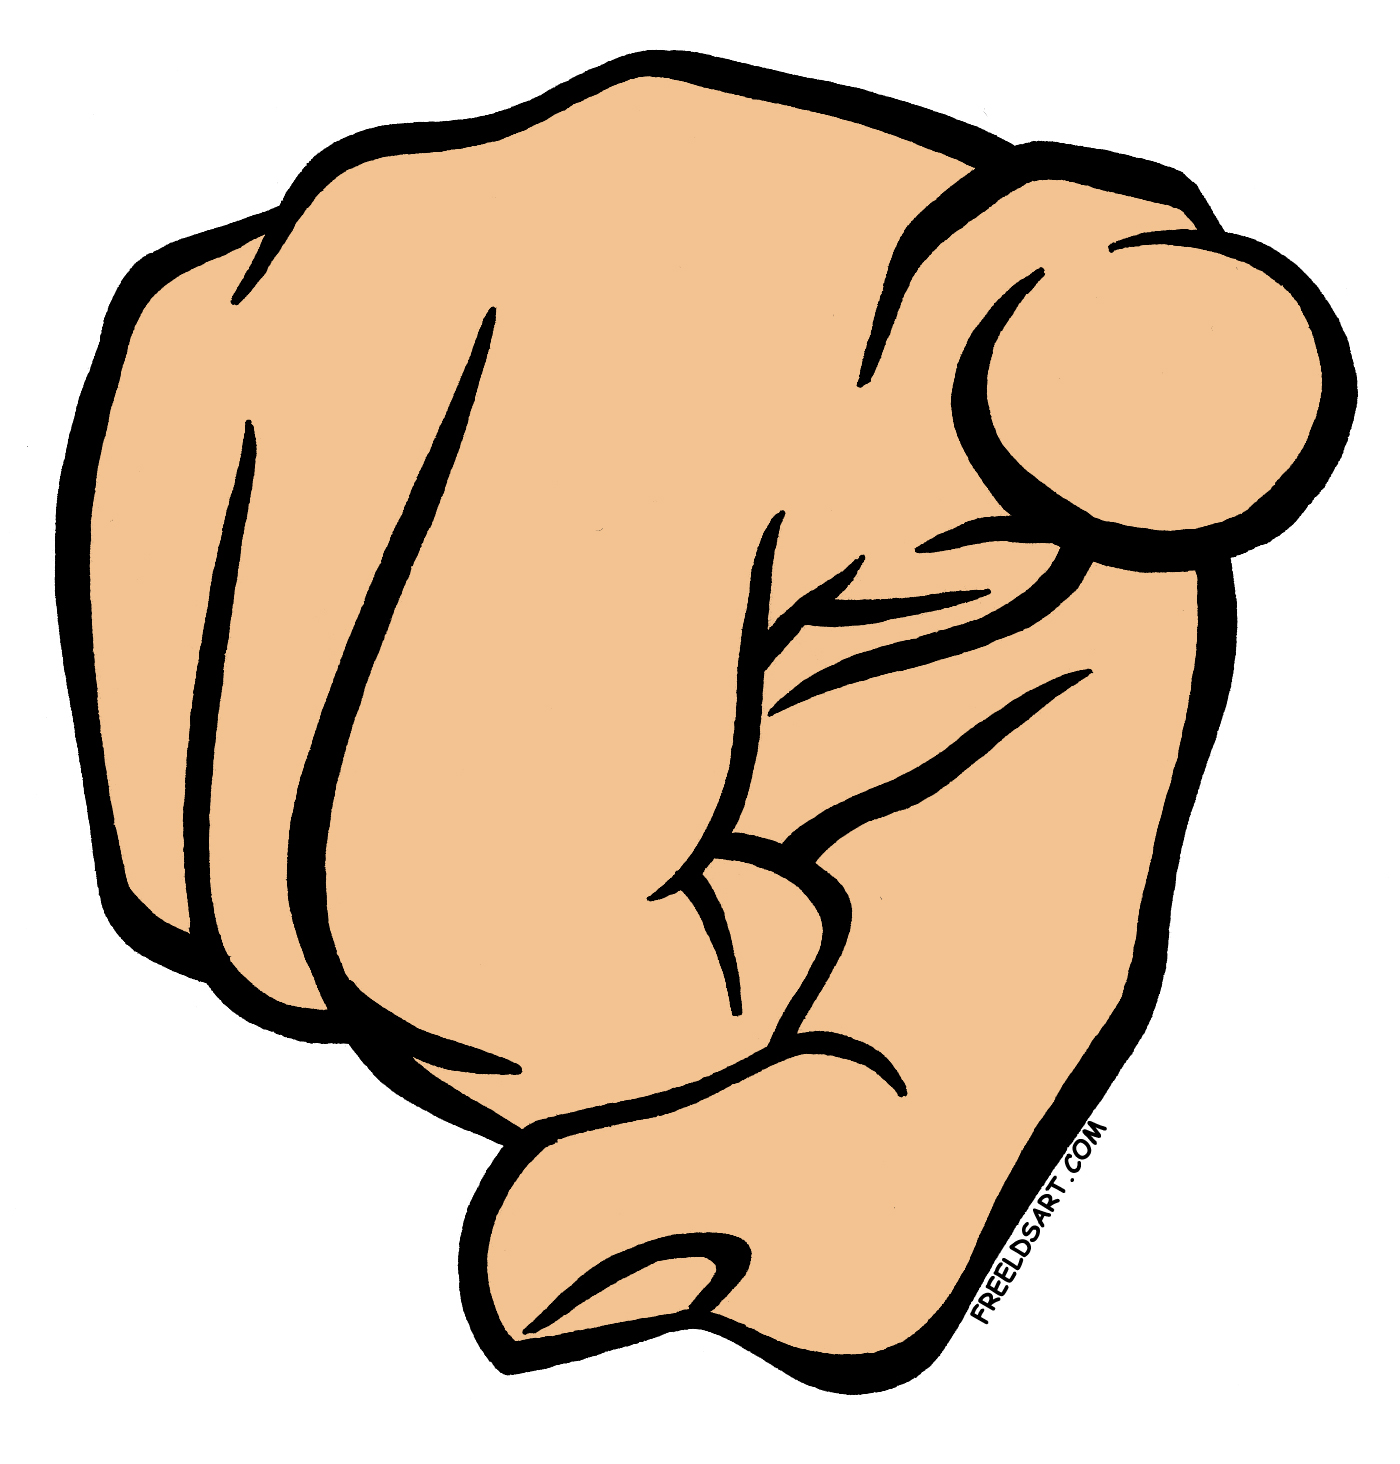 Me Pointing Finger Clipart-Me Pointing Finger Clipart-1